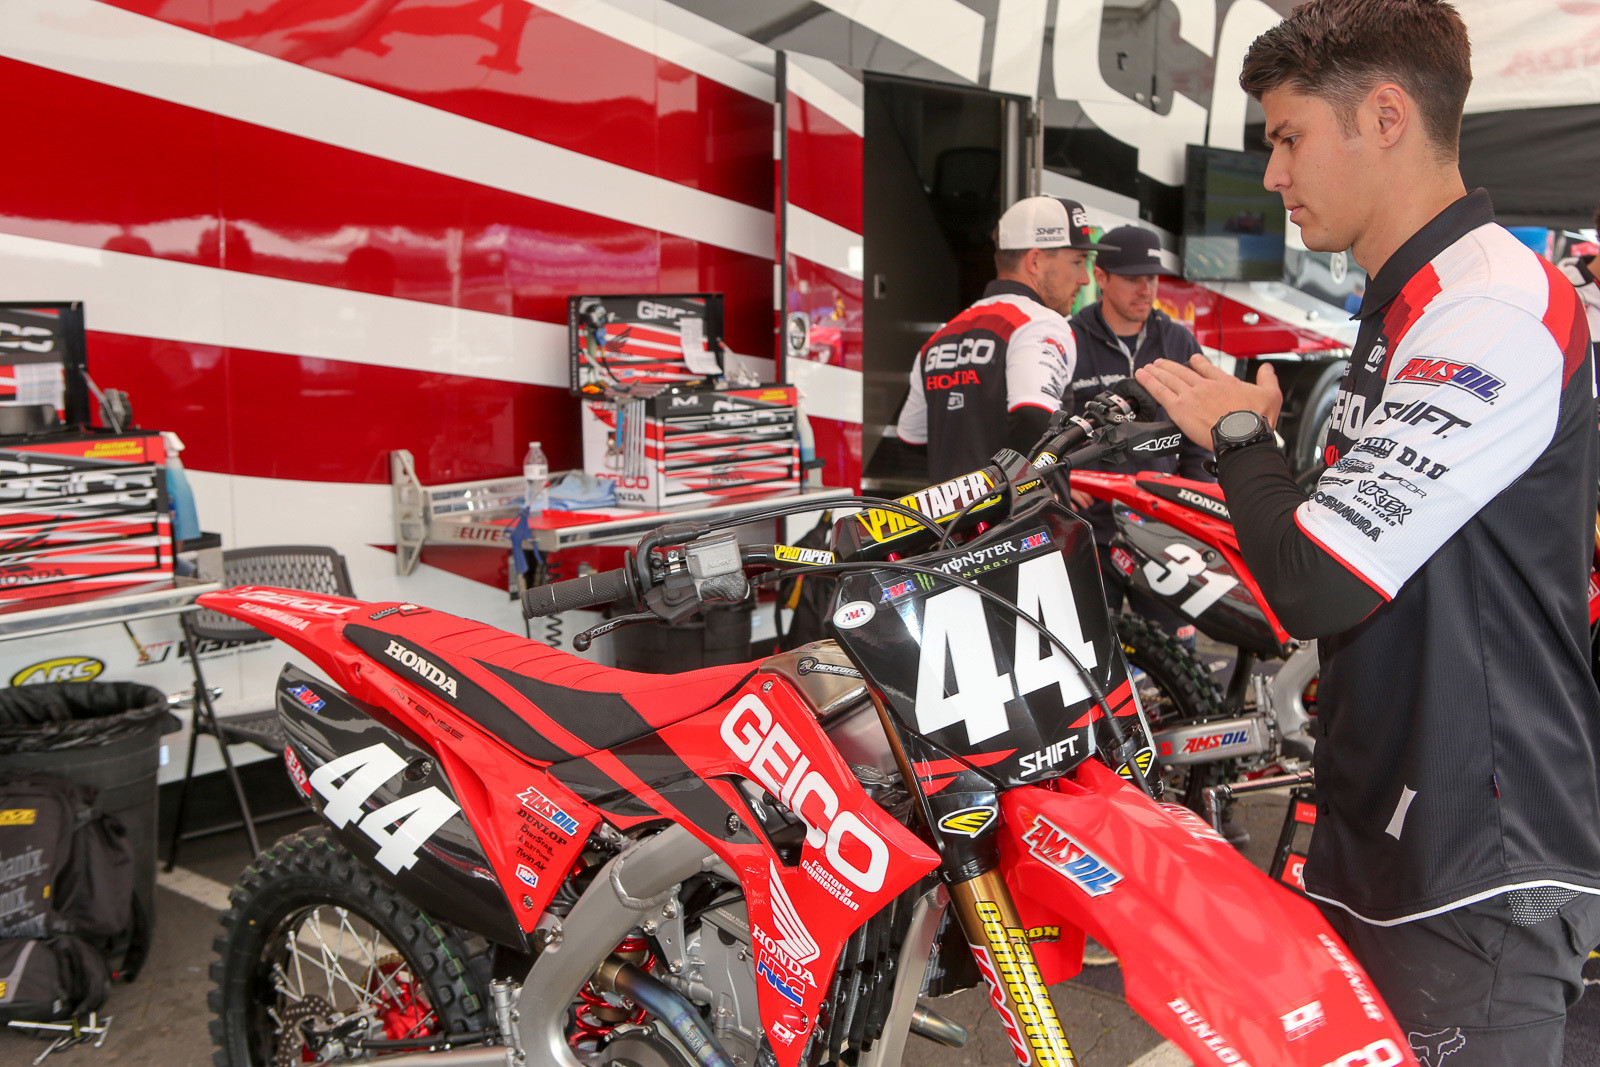 Ricki Rock is replacing Derik Dwyer for wrenching duties on Cameron McAdoo's bike. Derik and his wife are on maternity watch.